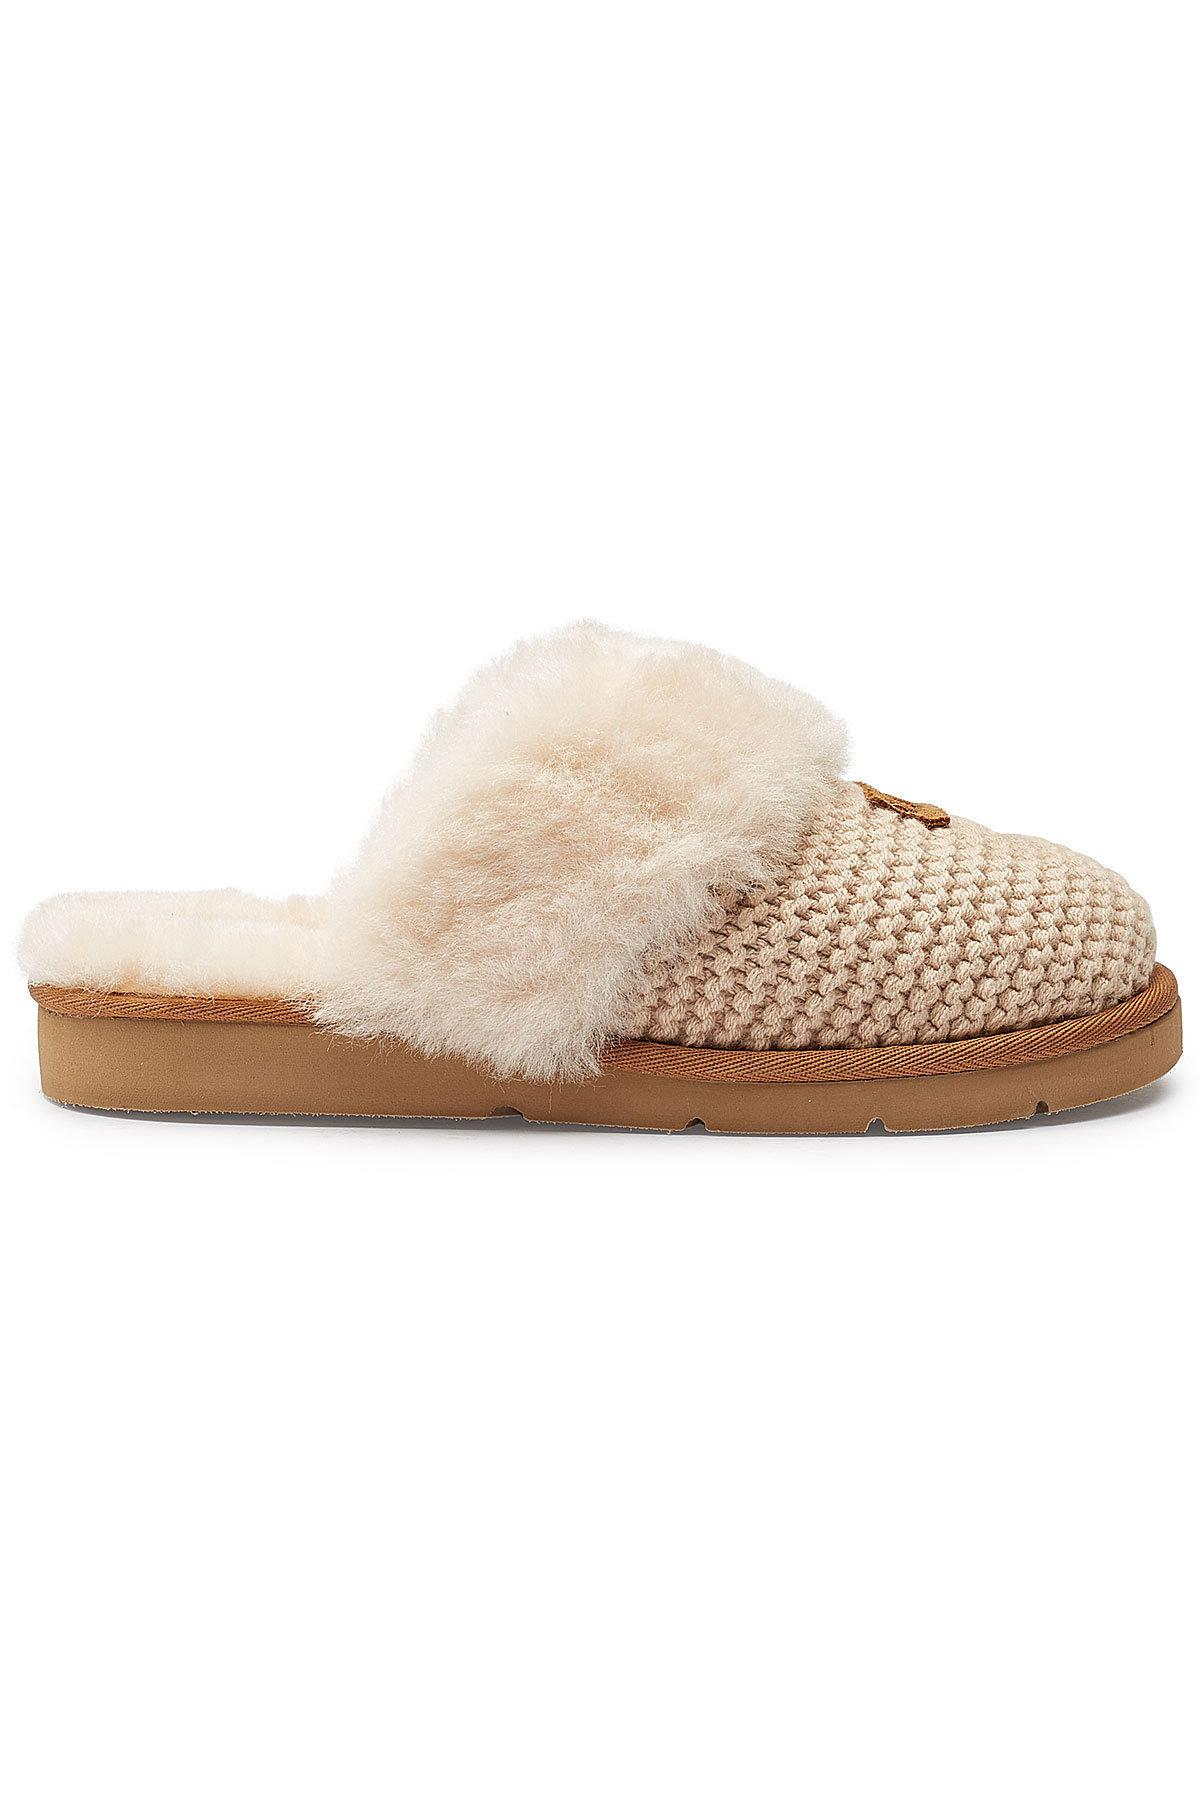 a28a80ab62b Ugg Cozy Knit Cable Slippers - Image Skirt and Slipper Imagepv.co